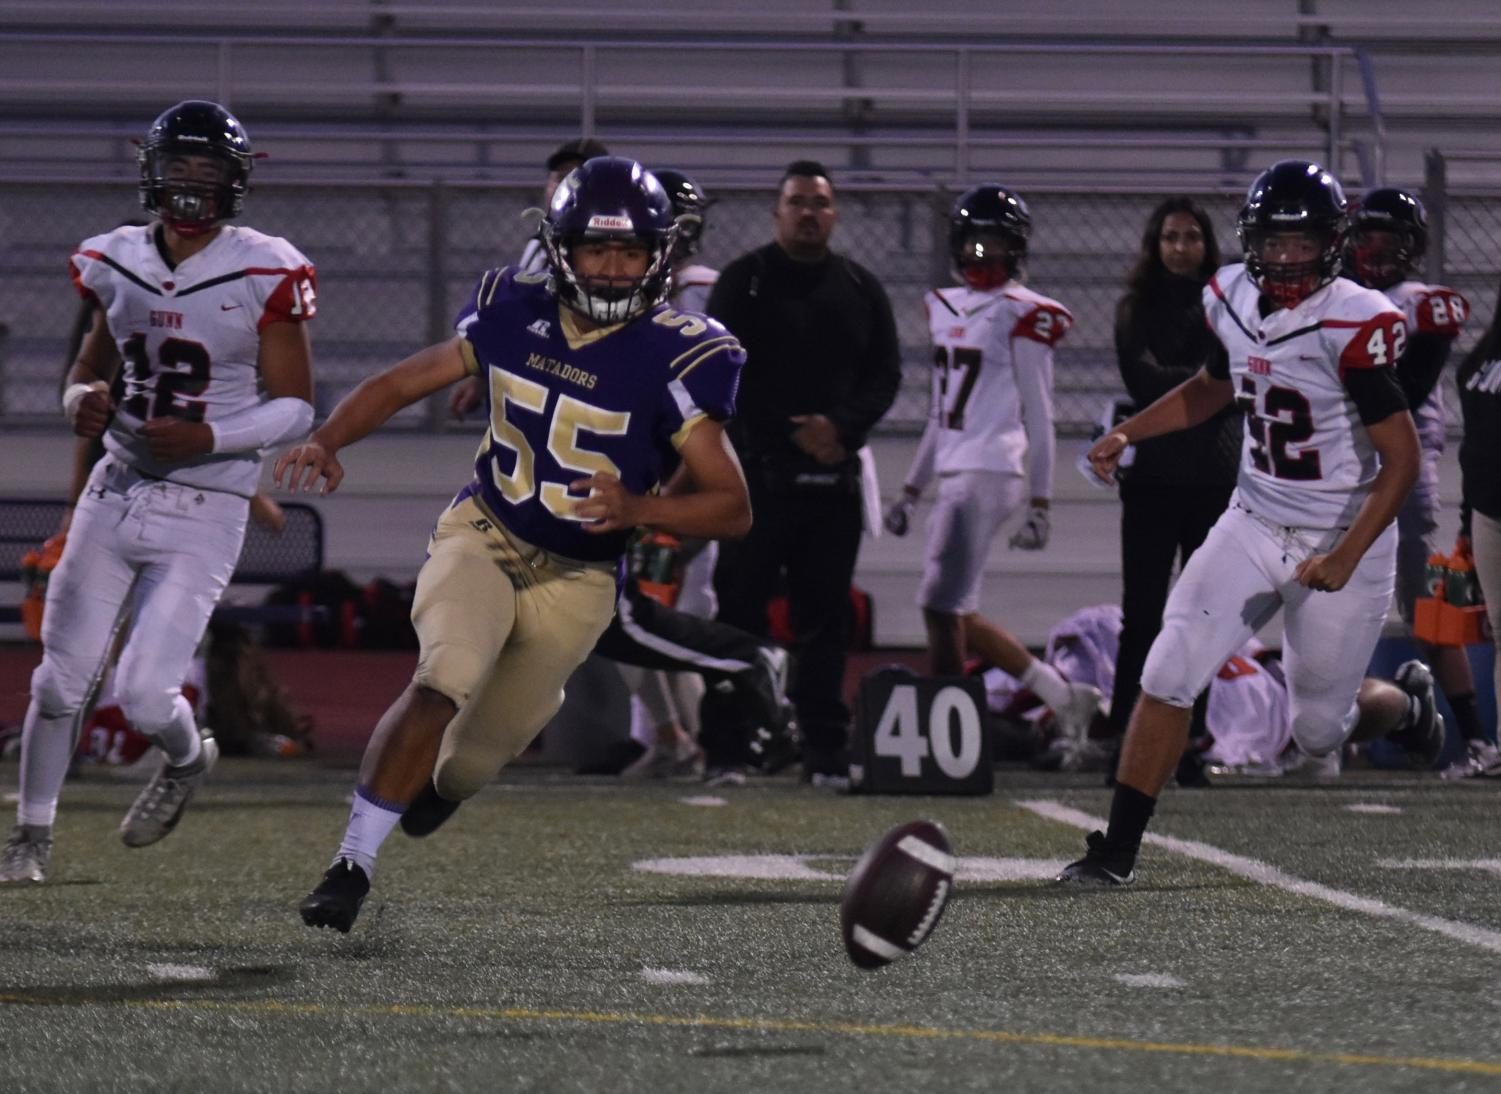 Senior Josh Garcia runs after the ball with Gunn players trailing closely behind